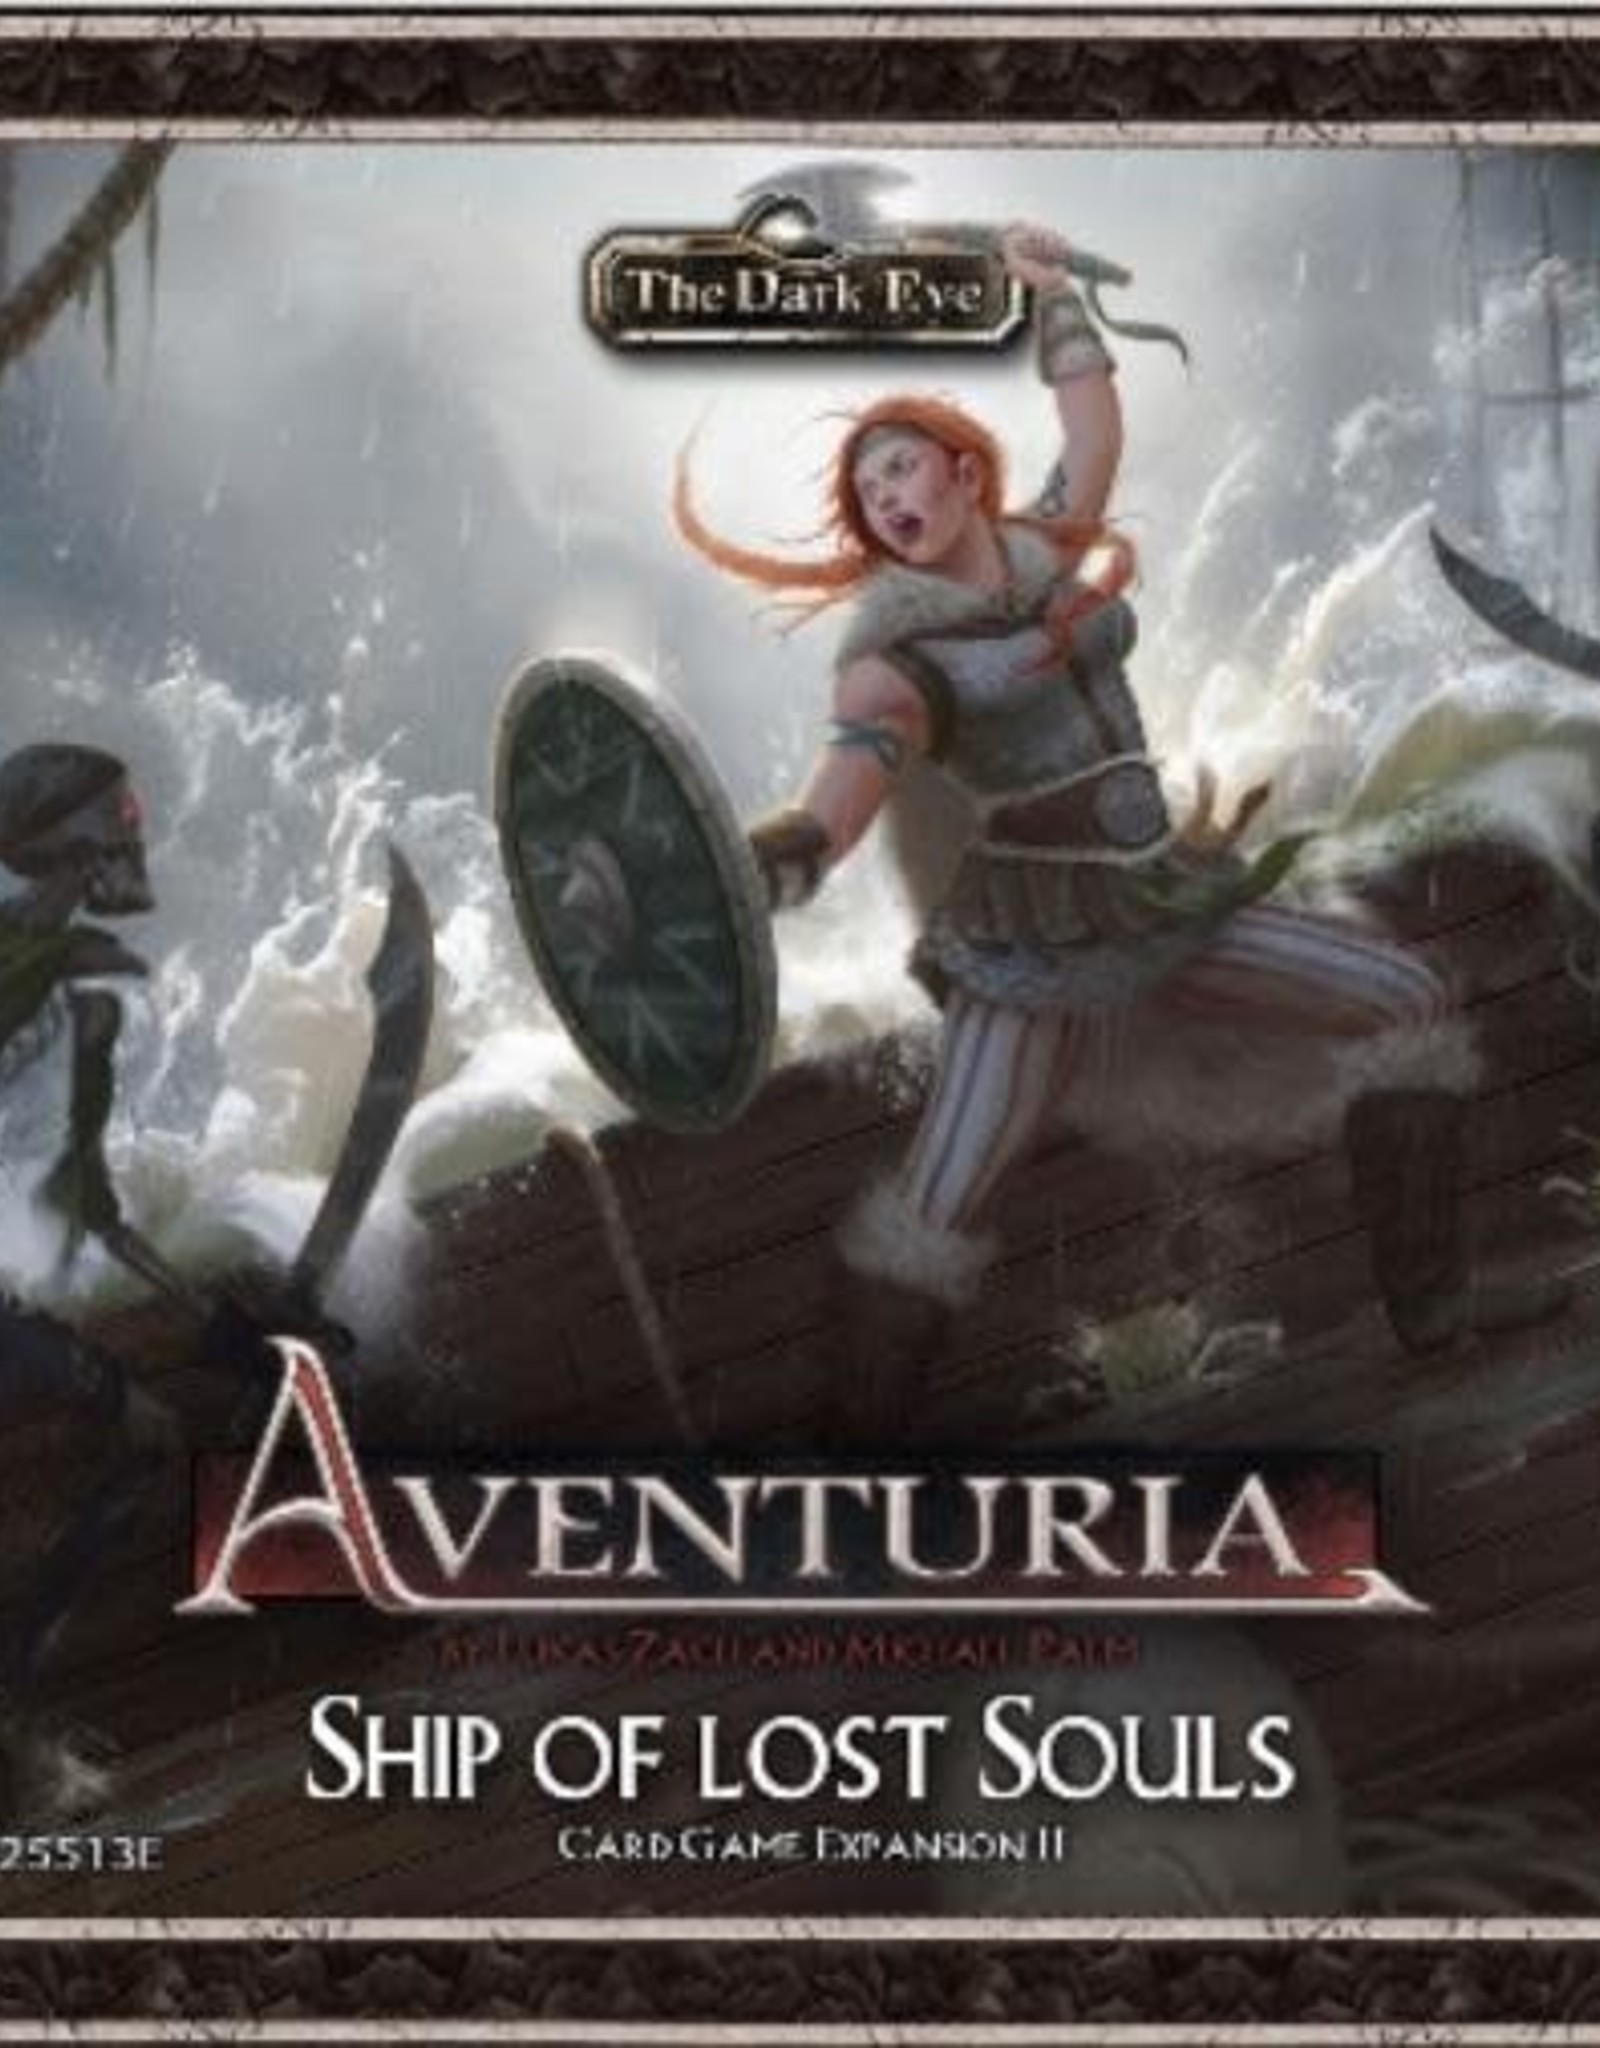 The Dark Eye: Aventuria Adventure Card Game - Ship of Lost Souls Expansion